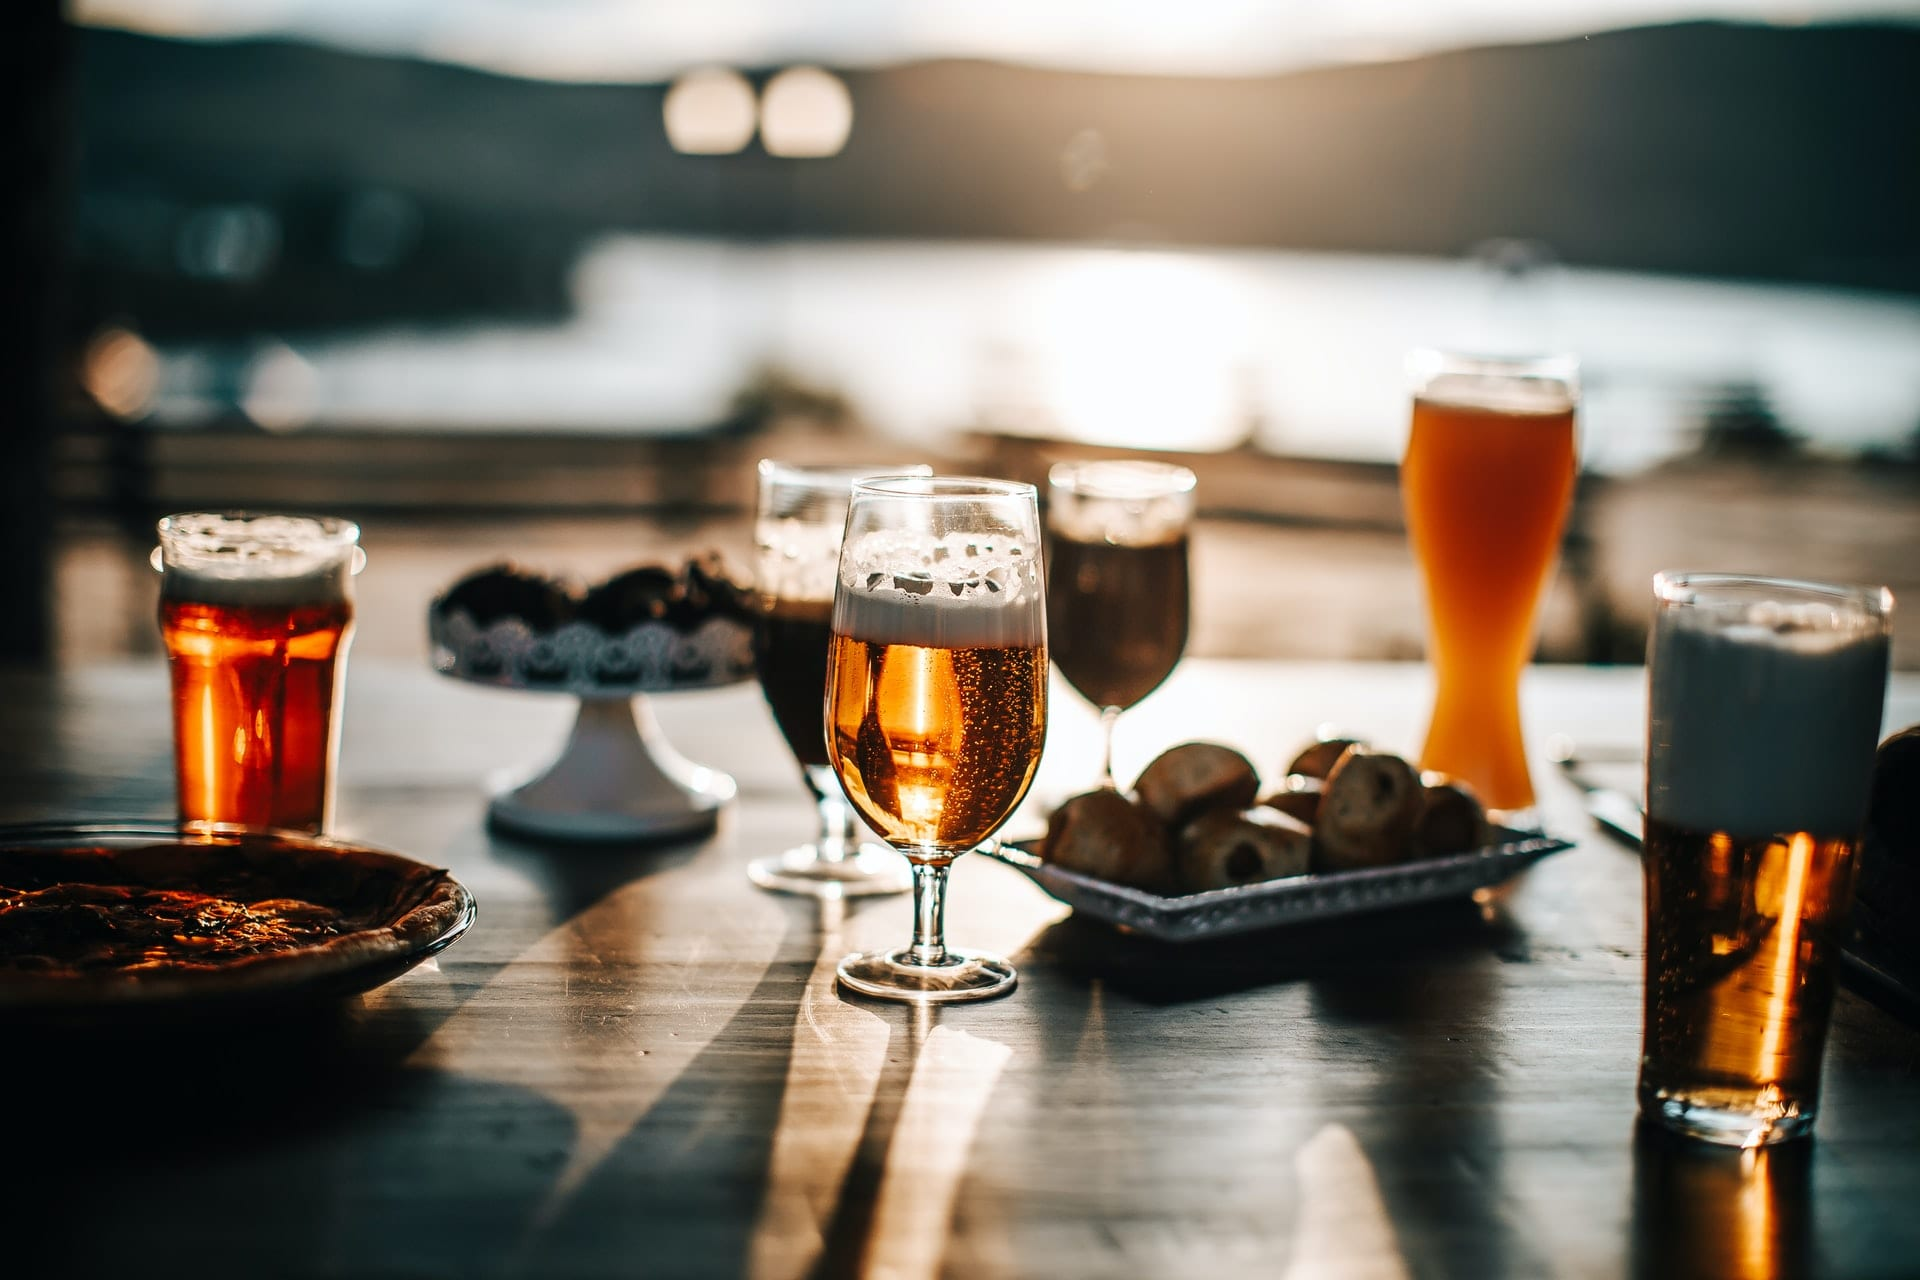 Maine Lobster and Maine Beer: What Grows Together, Goes Together